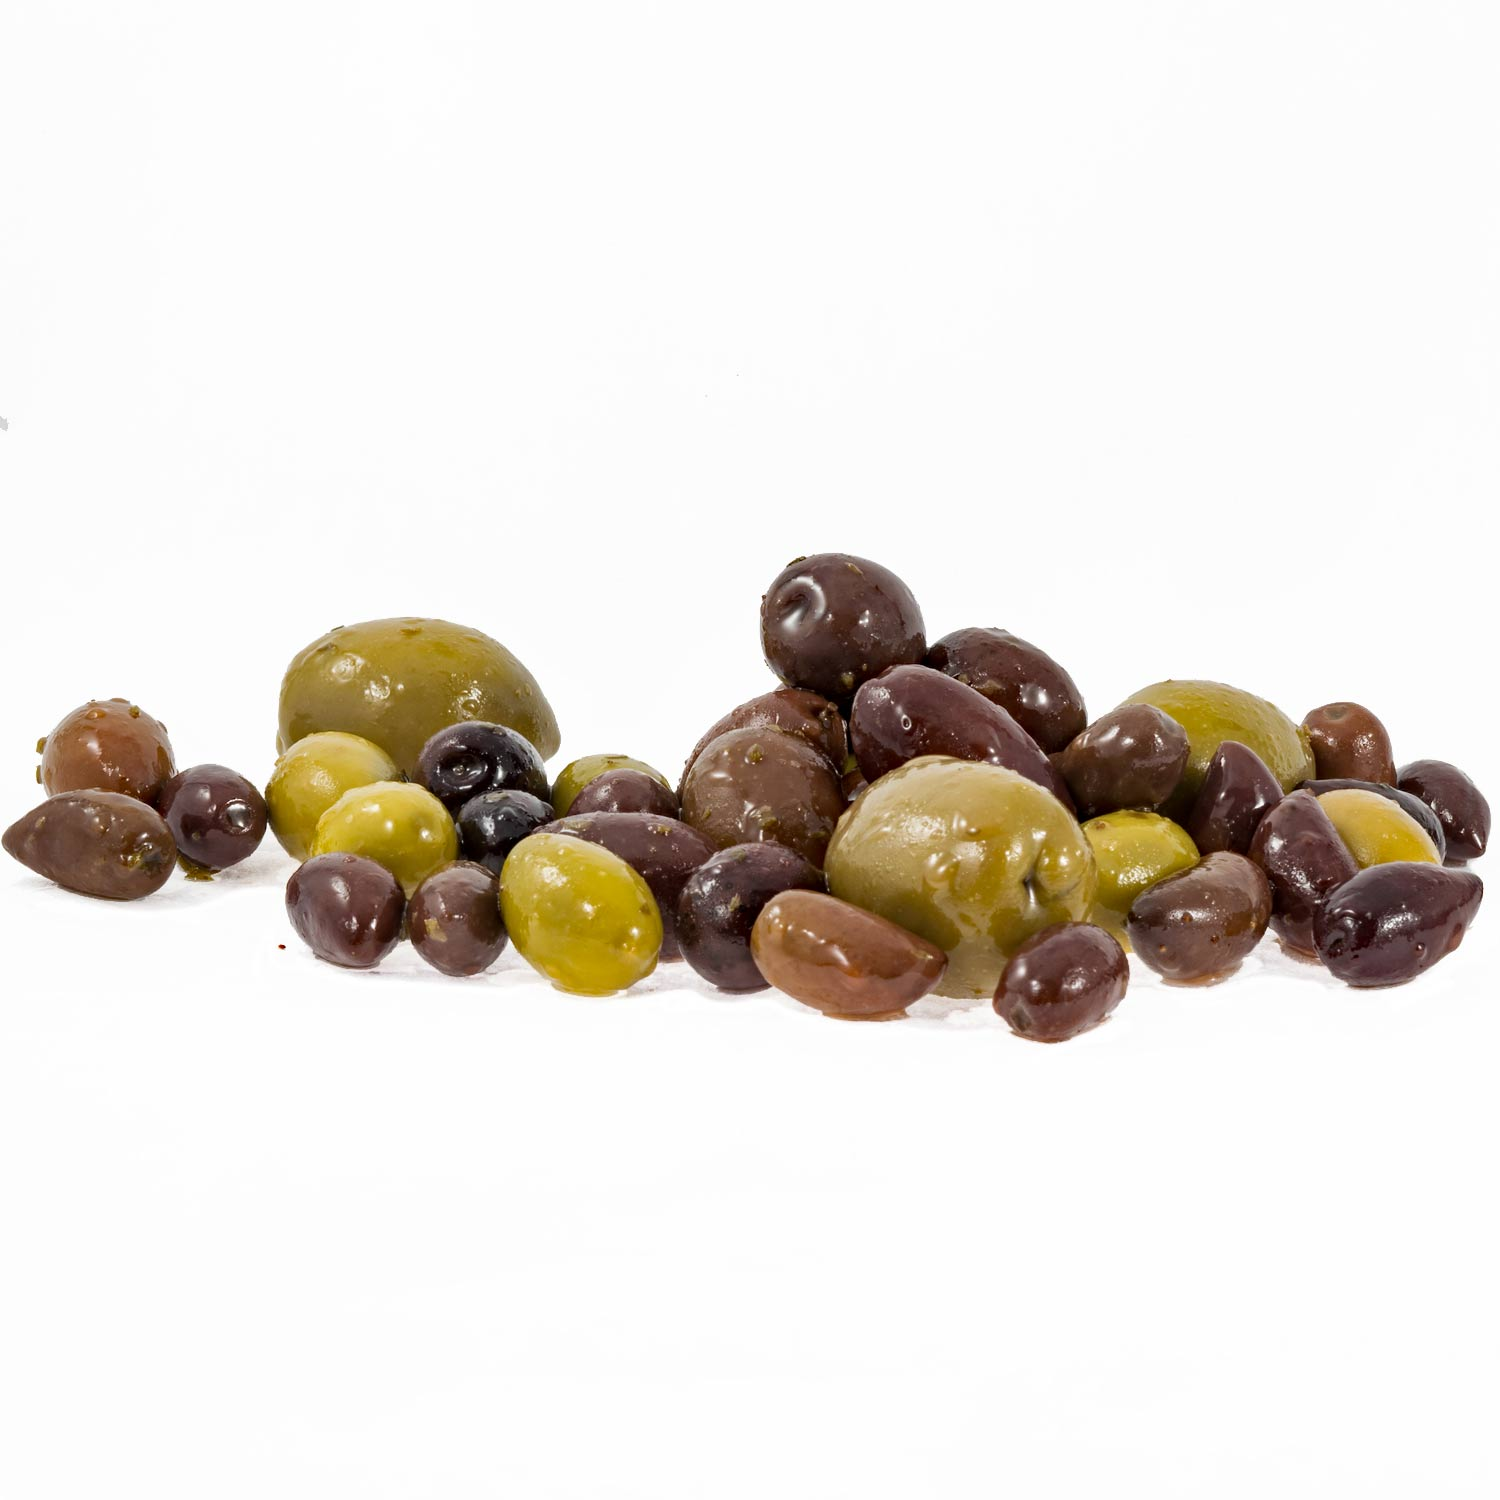 Olives-Greek-Mix.jpg